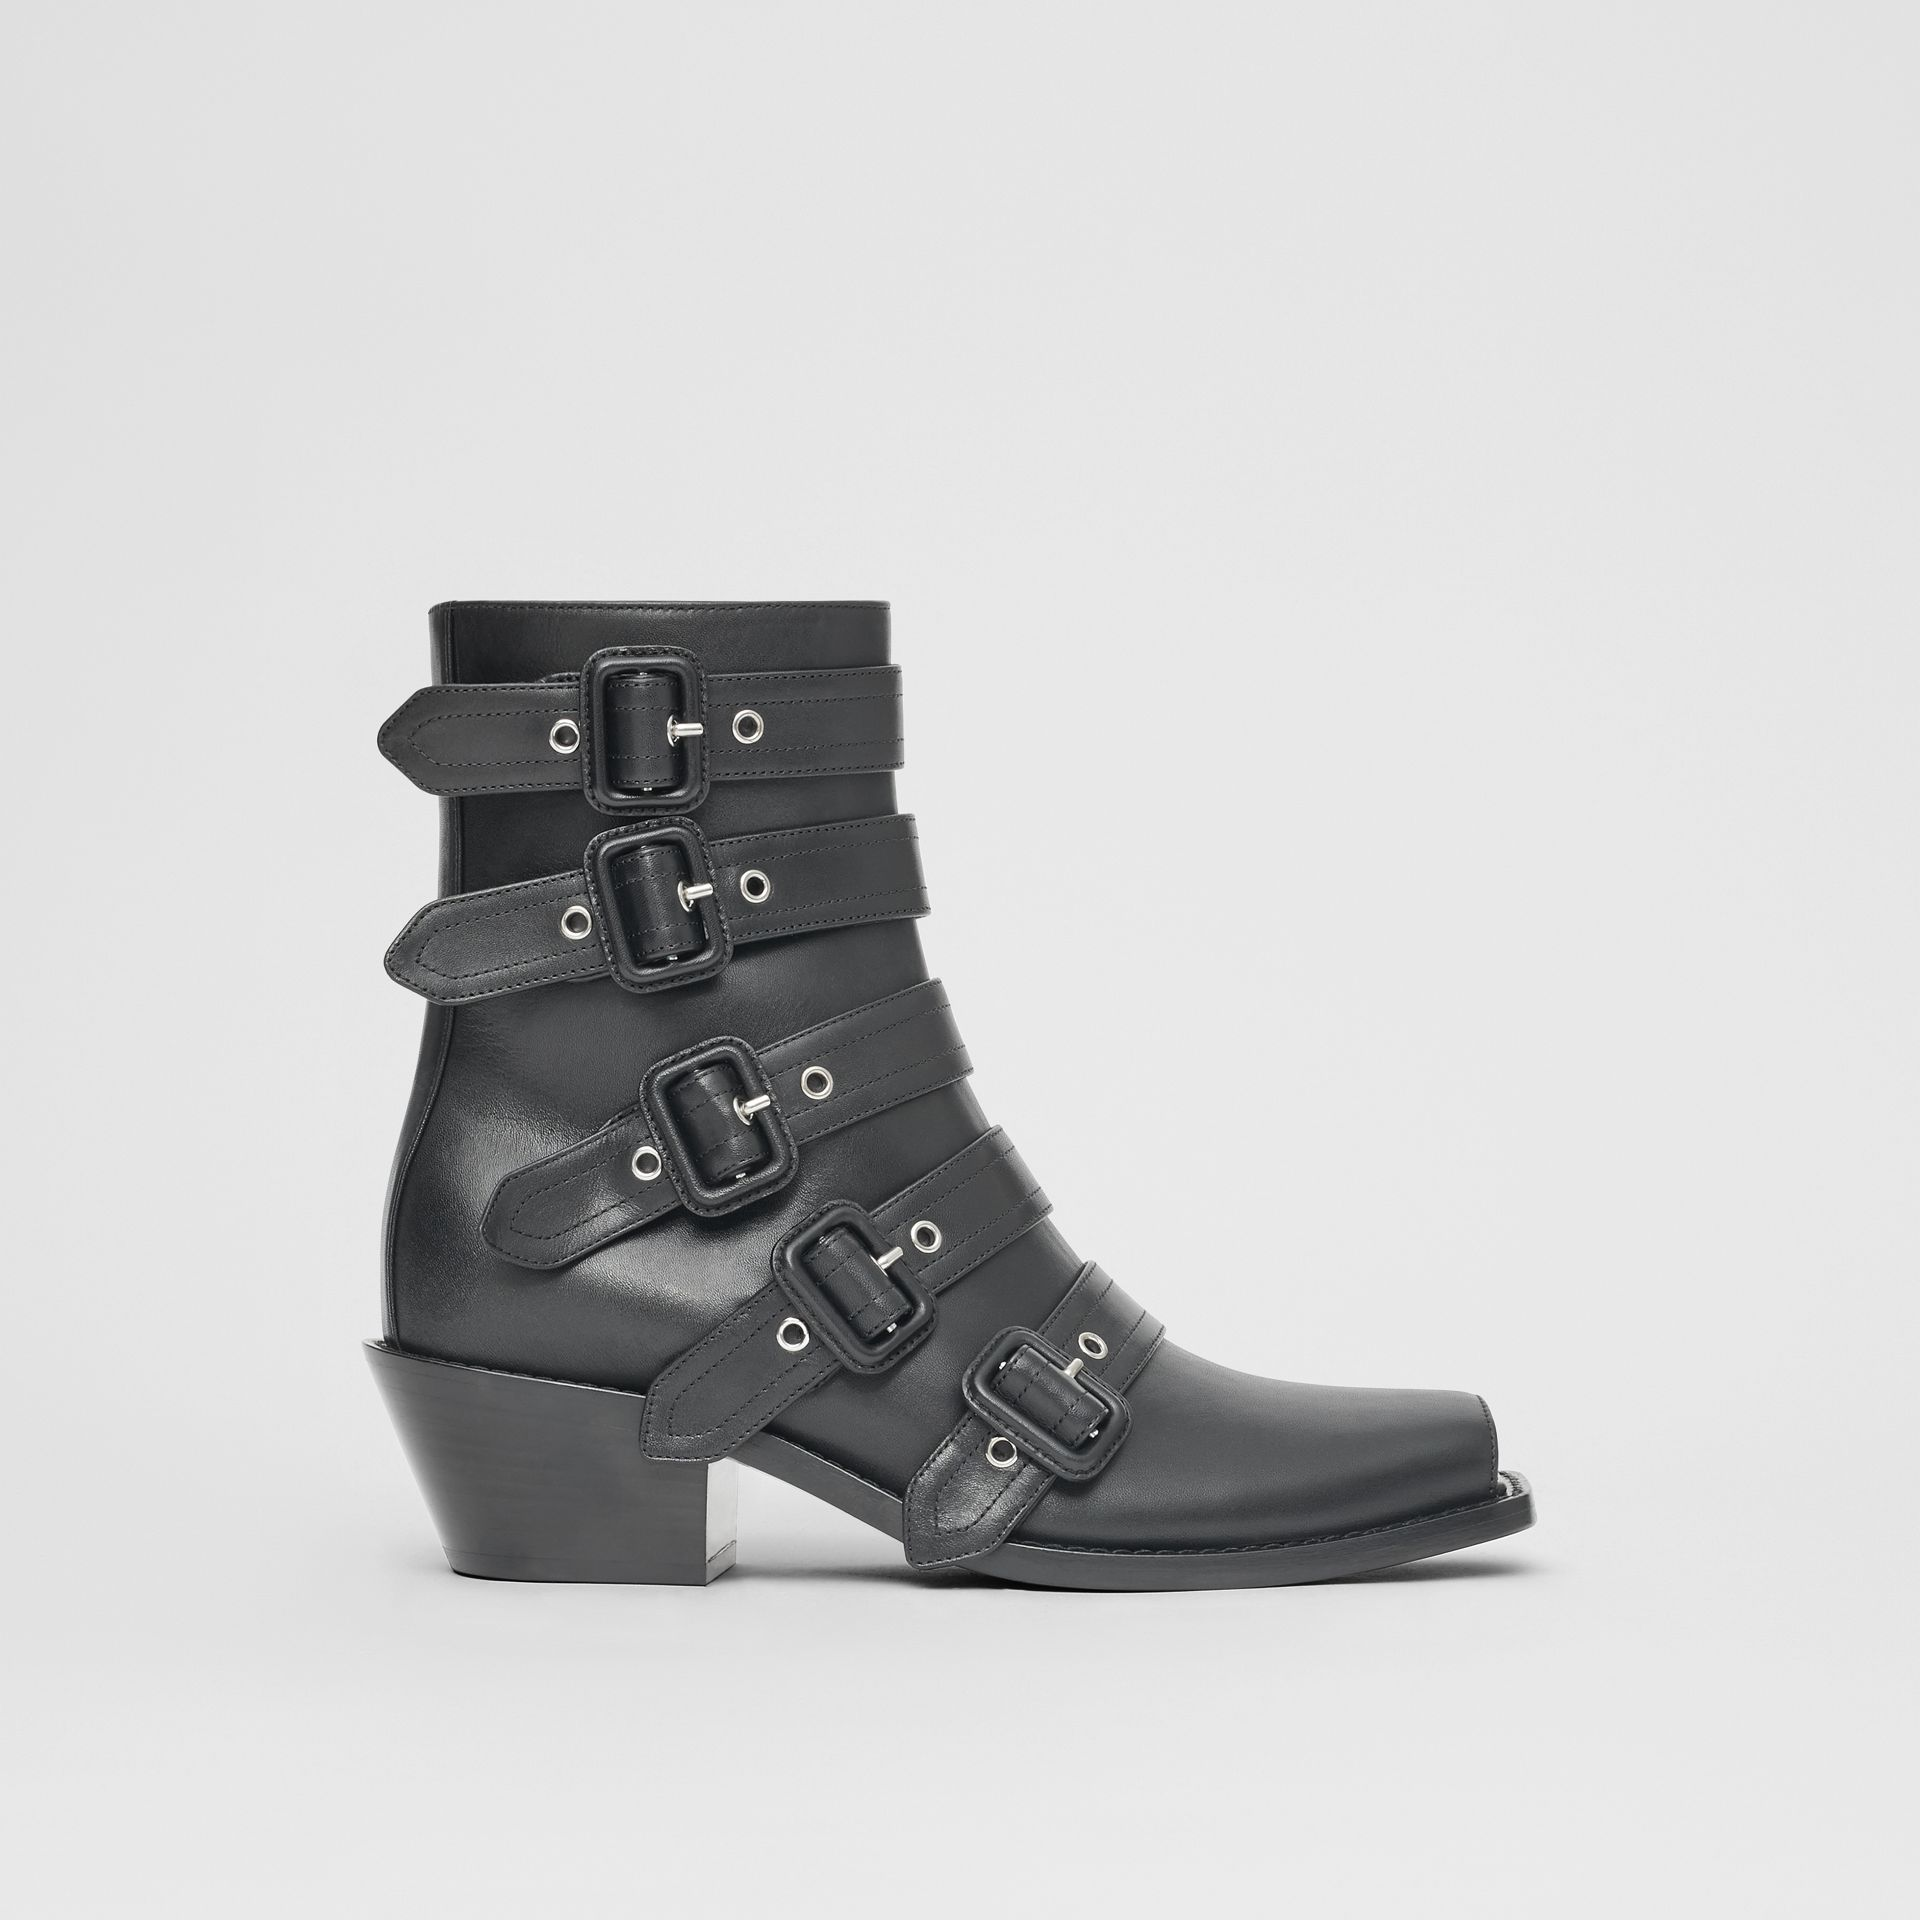 Buckled Leather Peep-toe Ankle Boots in Black - Women | Burberry - gallery image 4